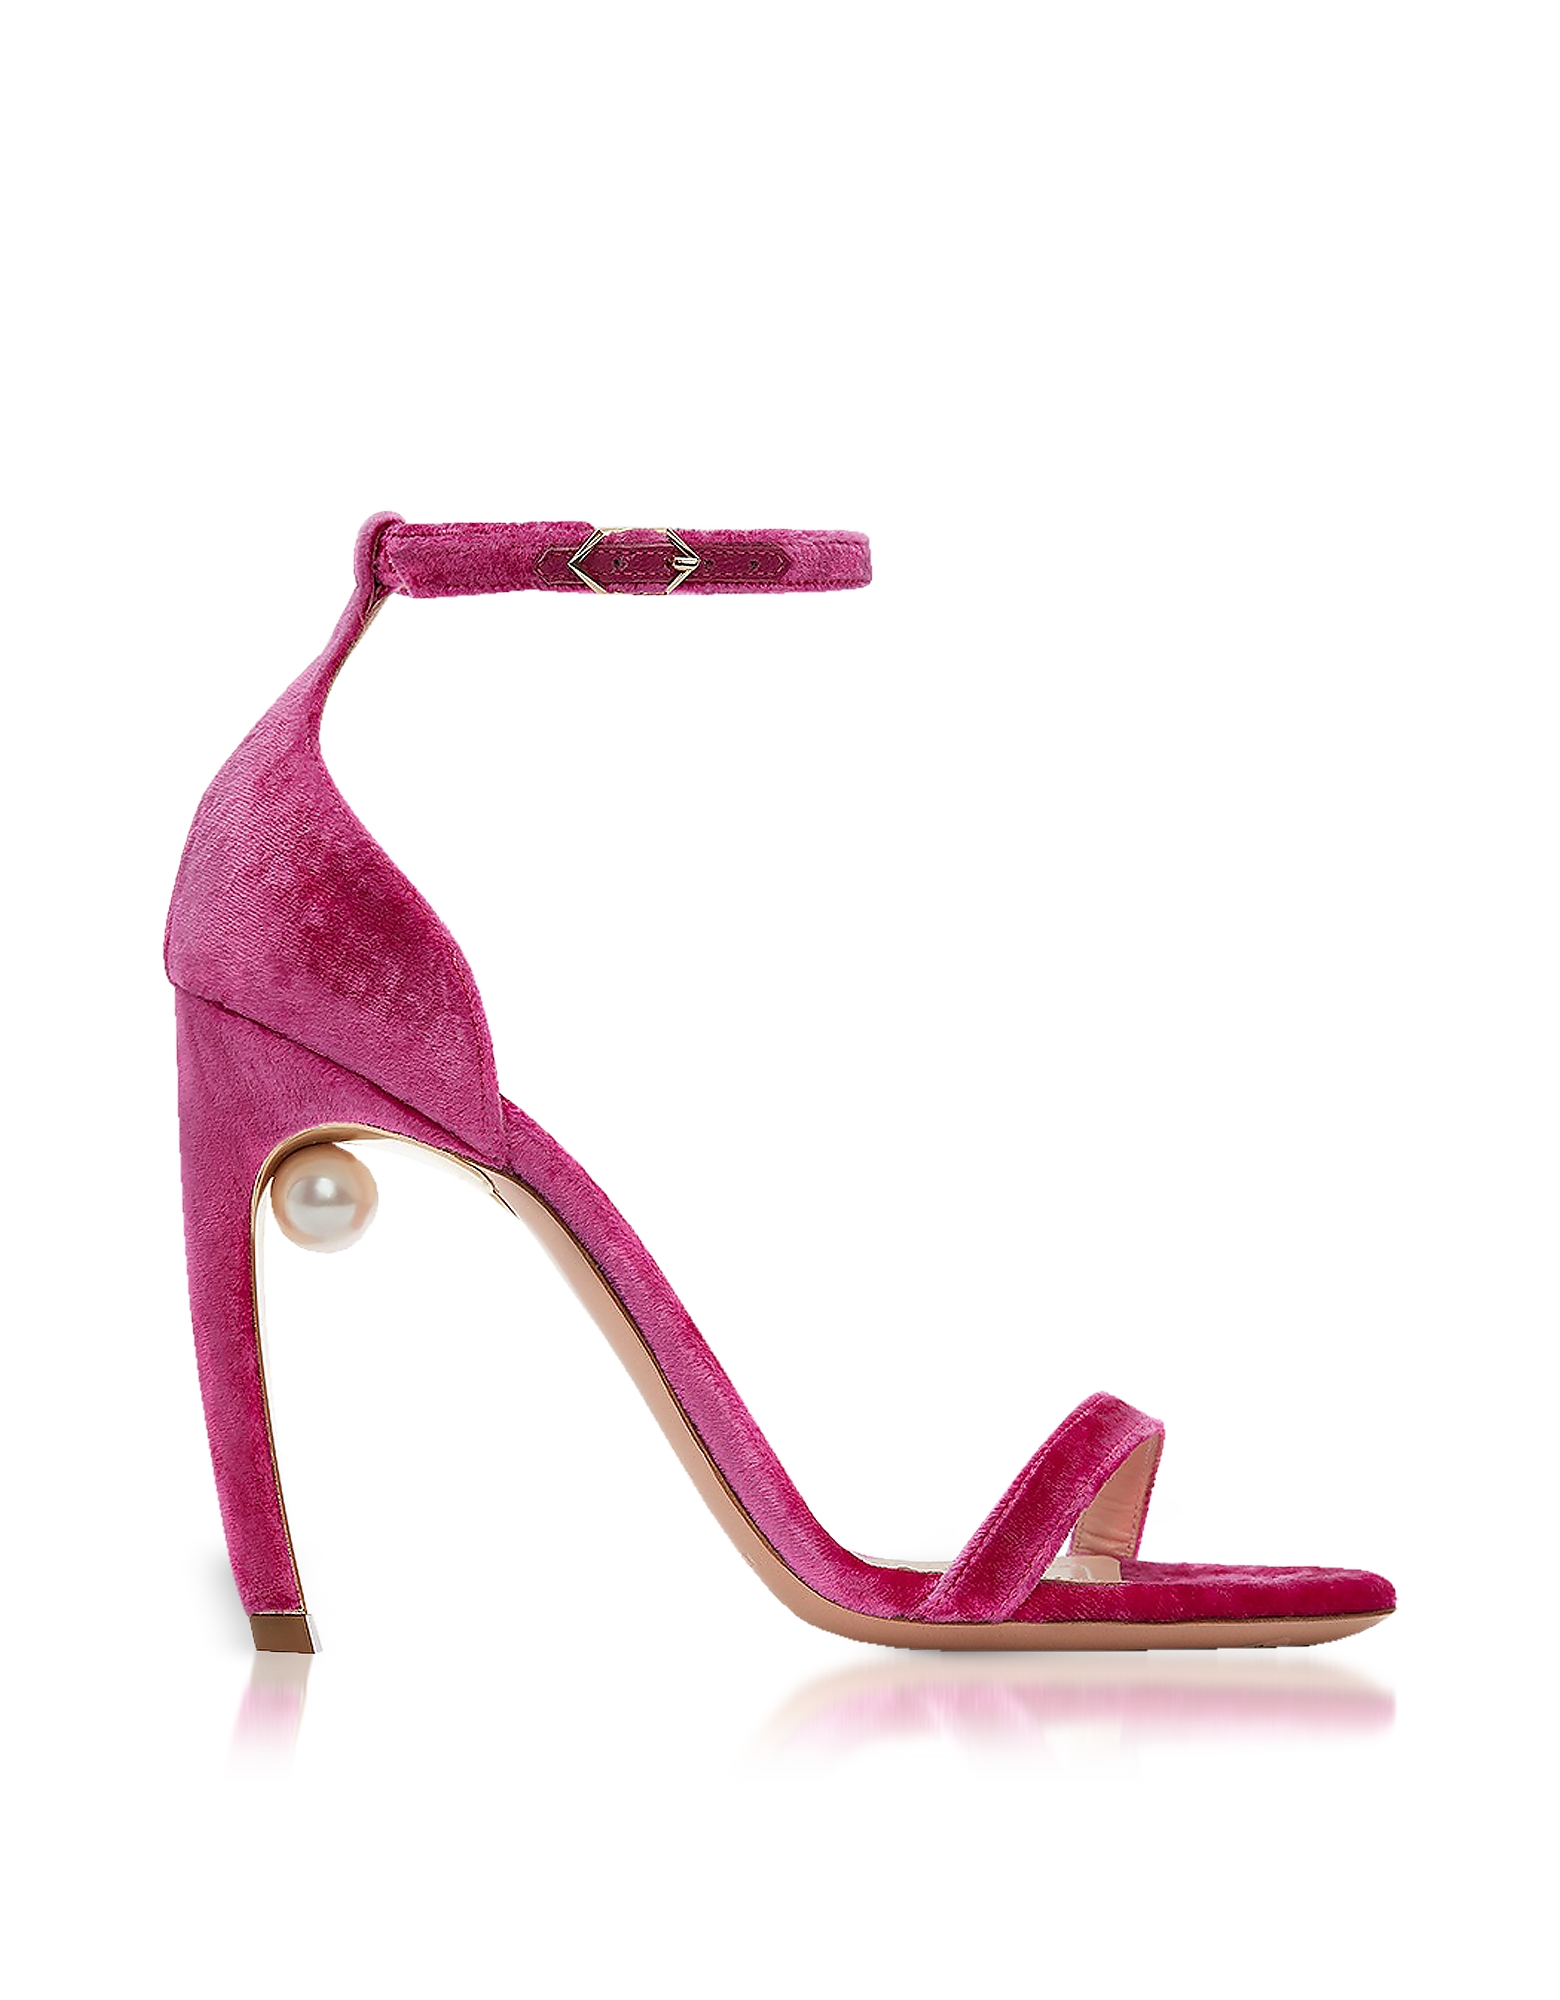 Nicholas Kirkwood Shoes, Fuchsia Velvet 105mm Mira Pearl Sandals